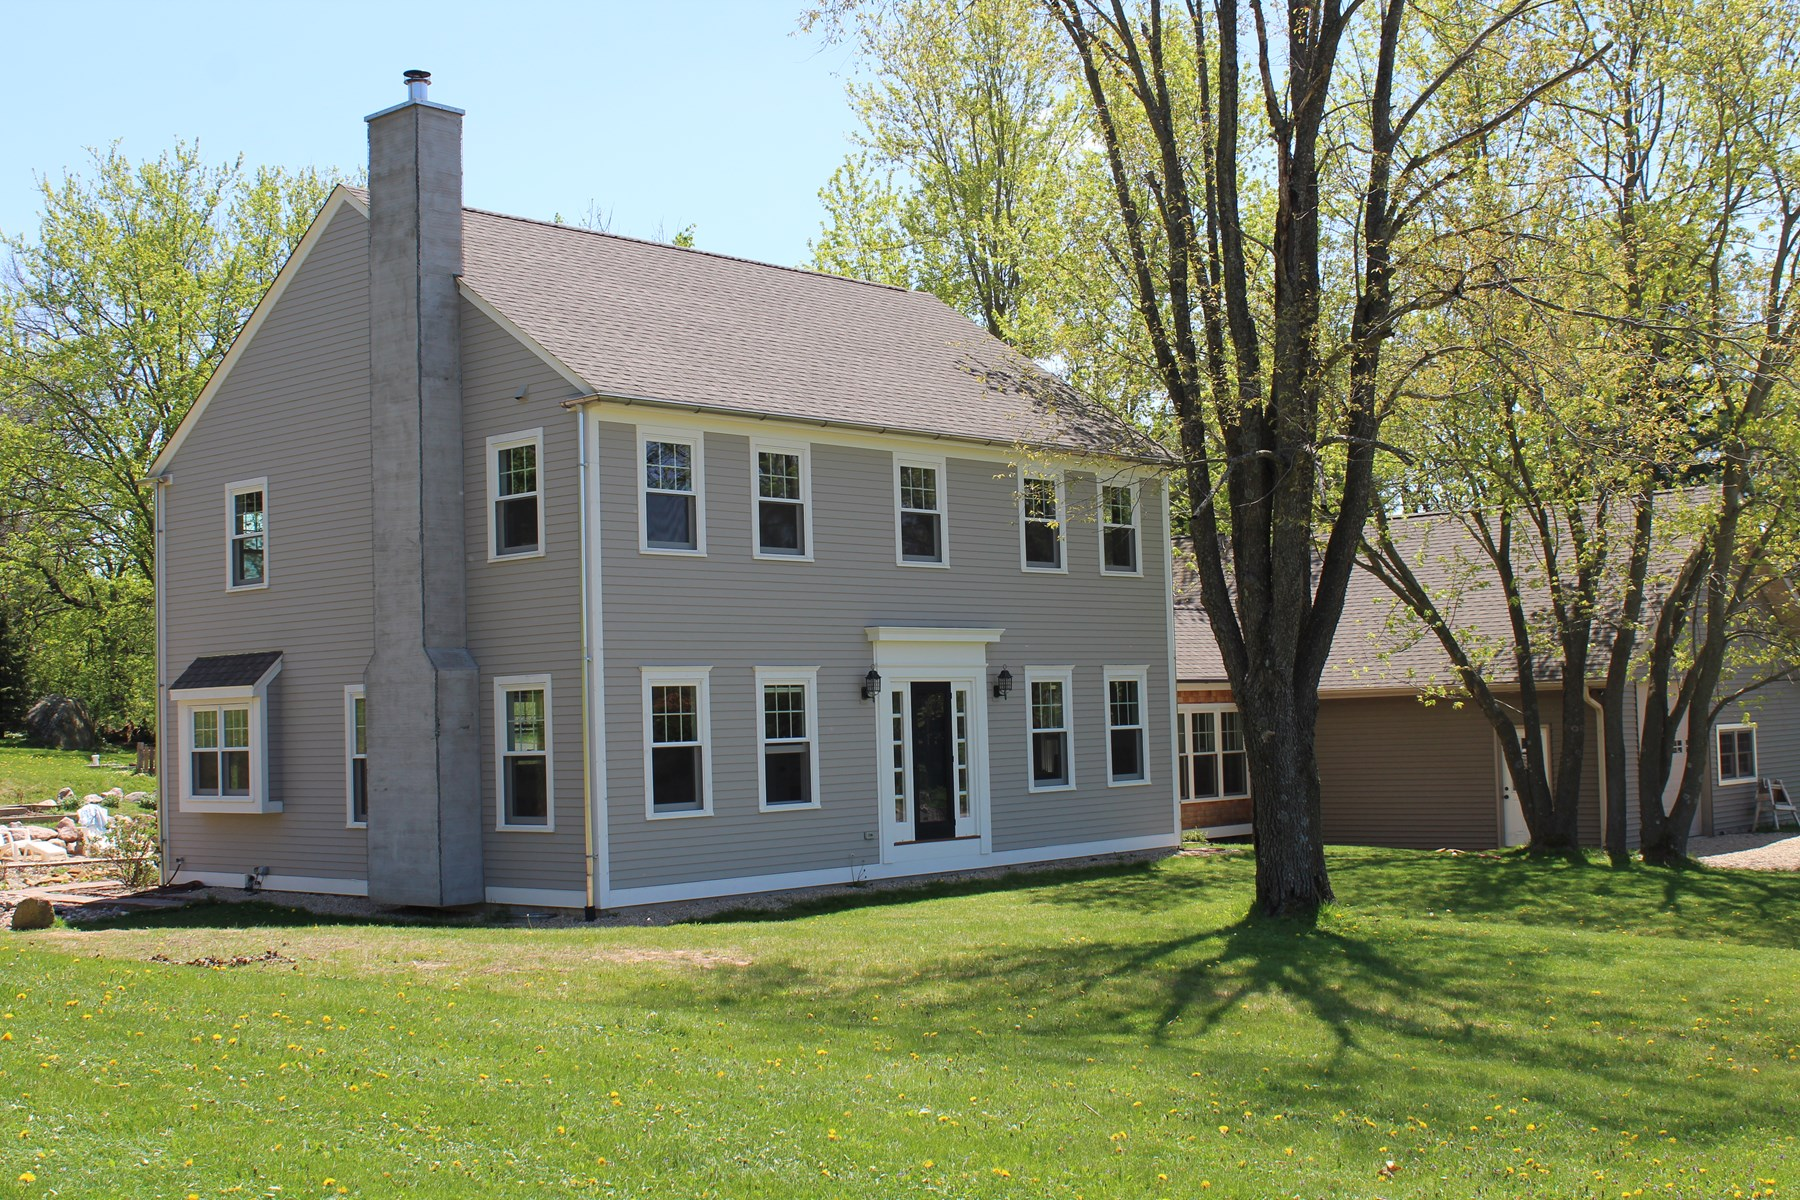 The New Old Farmhouse (Est. 2015) for sale in Viroqua WI